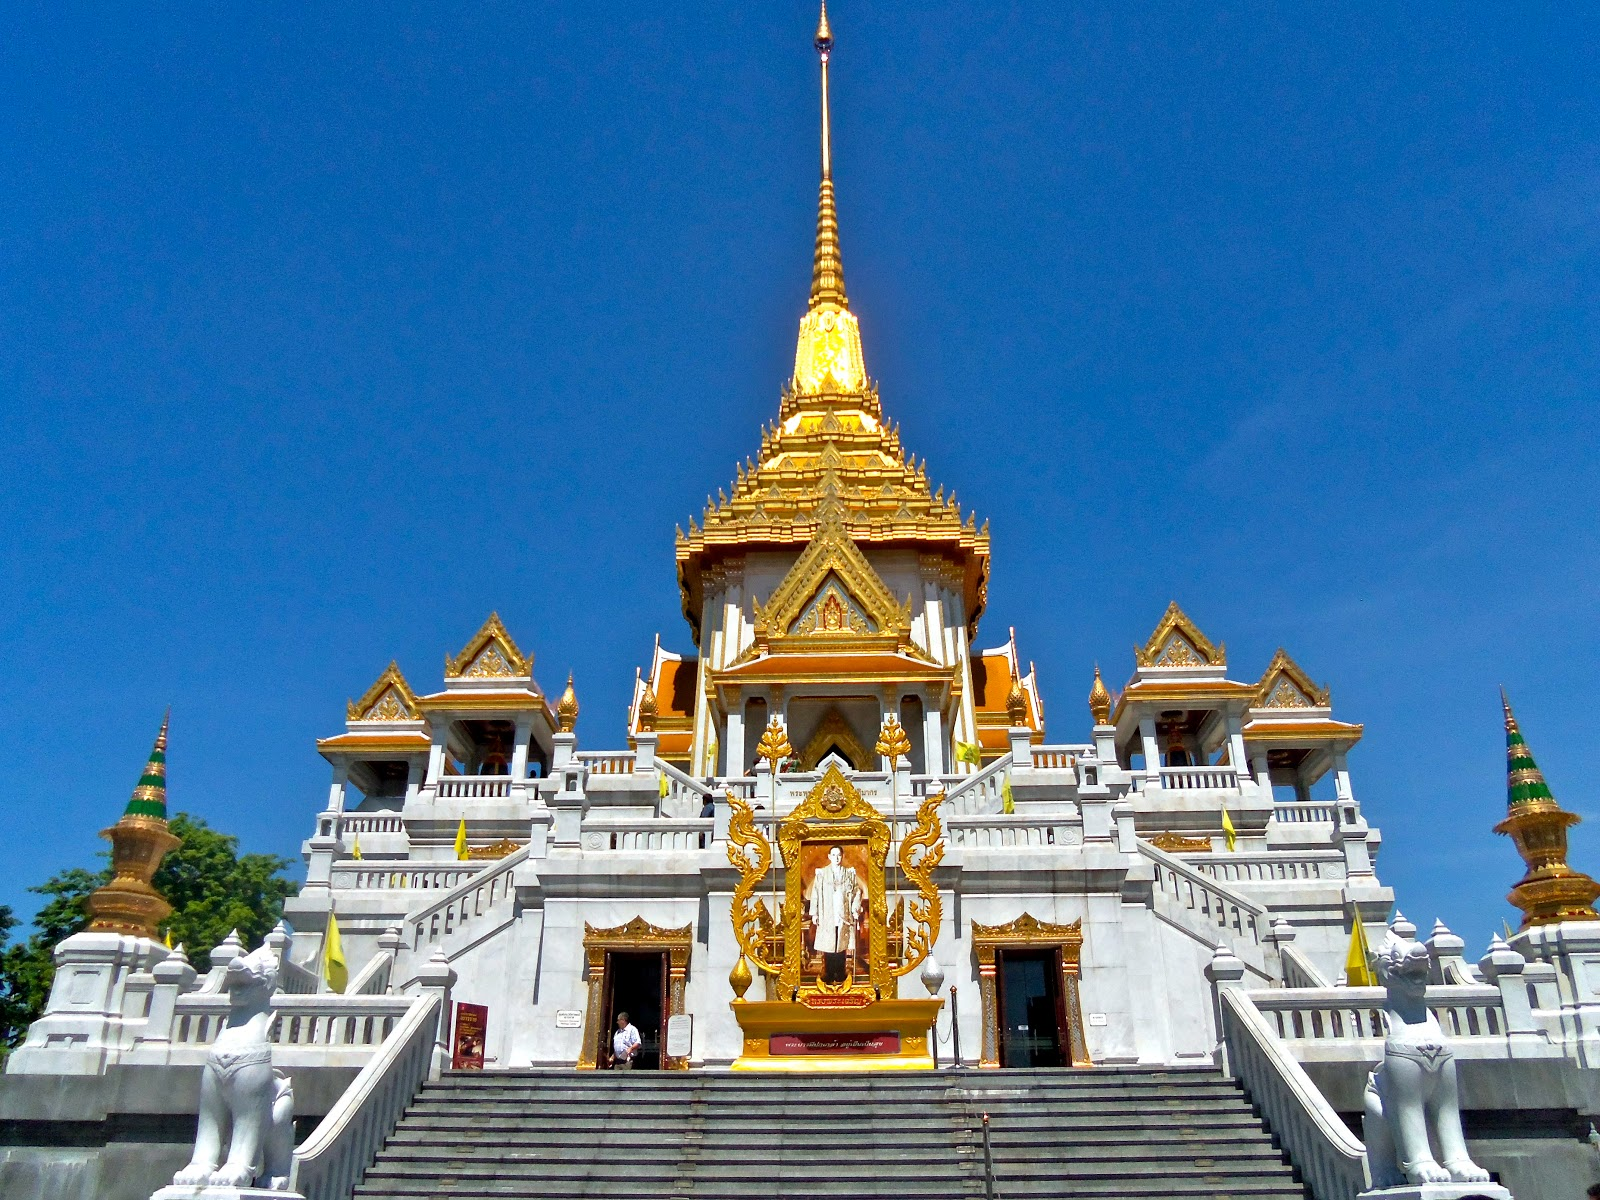 The Stunning Beauty of Temple of Golden Buddha in Thailand